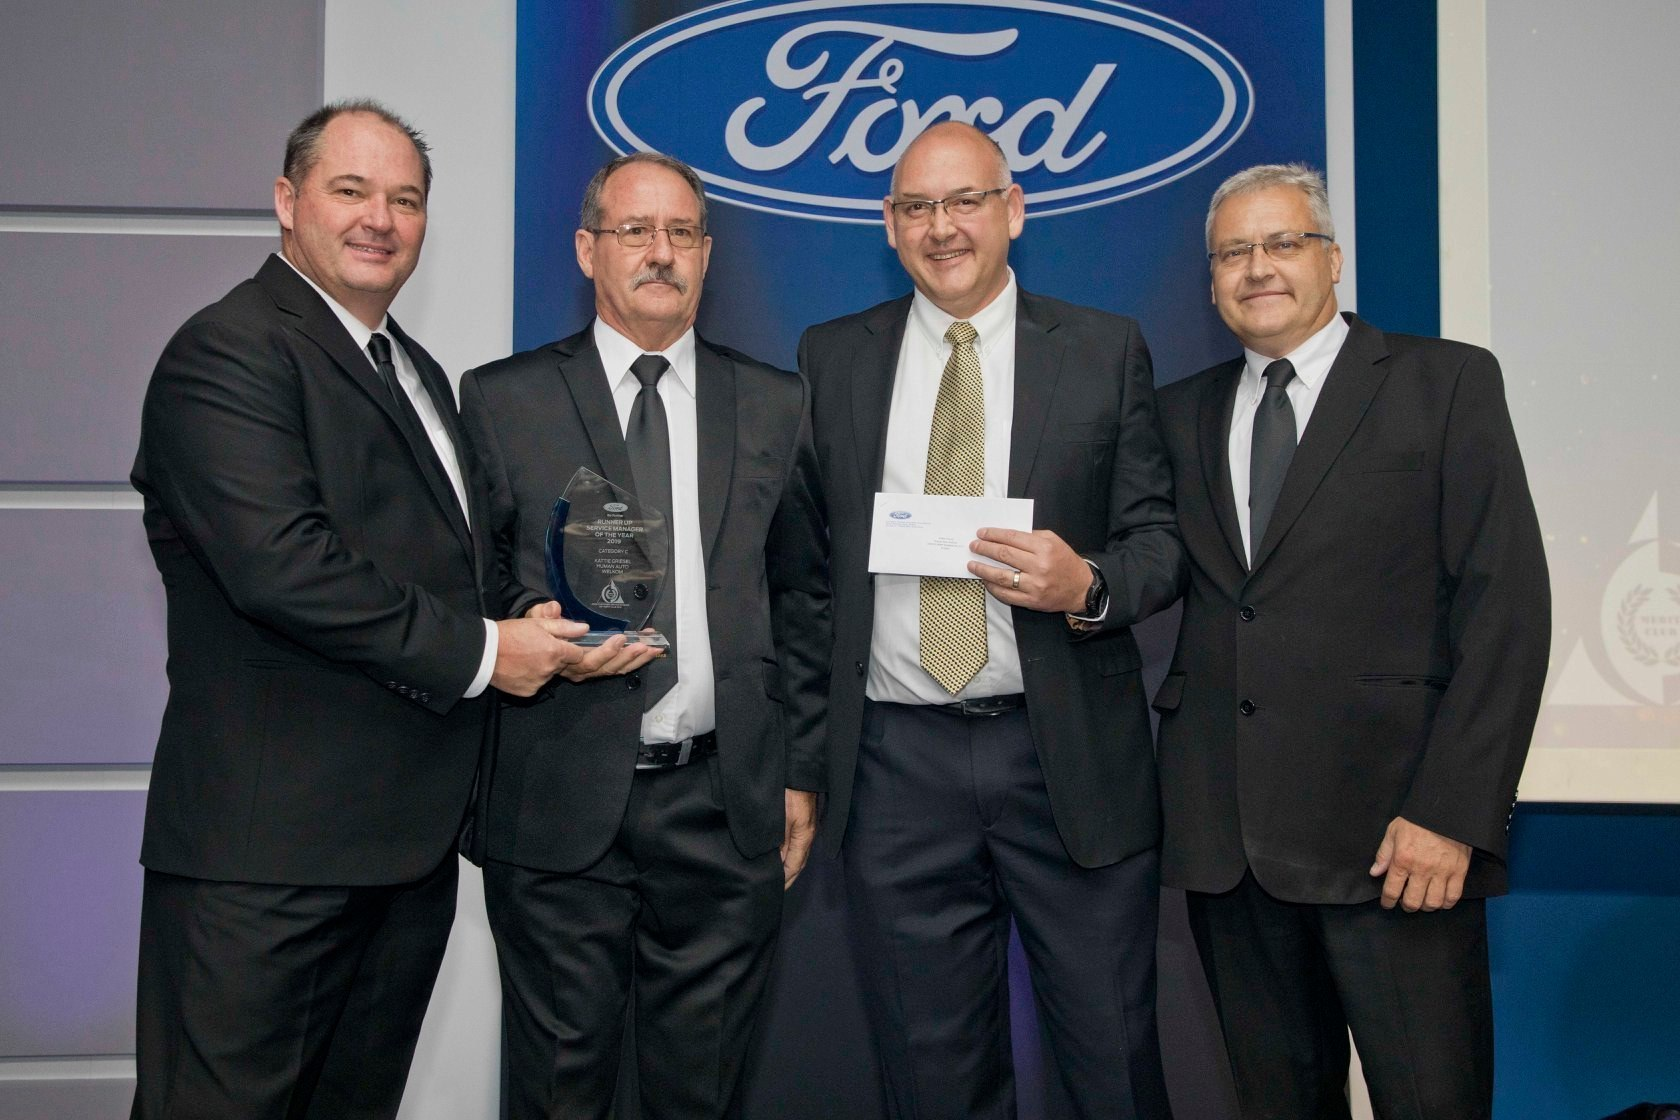 Neale Hill, CEO of Ford SA and sub-Saharan Africa, presenting the trophy to Human Auto Welkom's, Kattie Griesel. To the right is Pieter Verster (National Service Engineering Operations Manager, Ford SA) and Johnny Segaar (General Manager After Sales & Marketing, Ford SA)